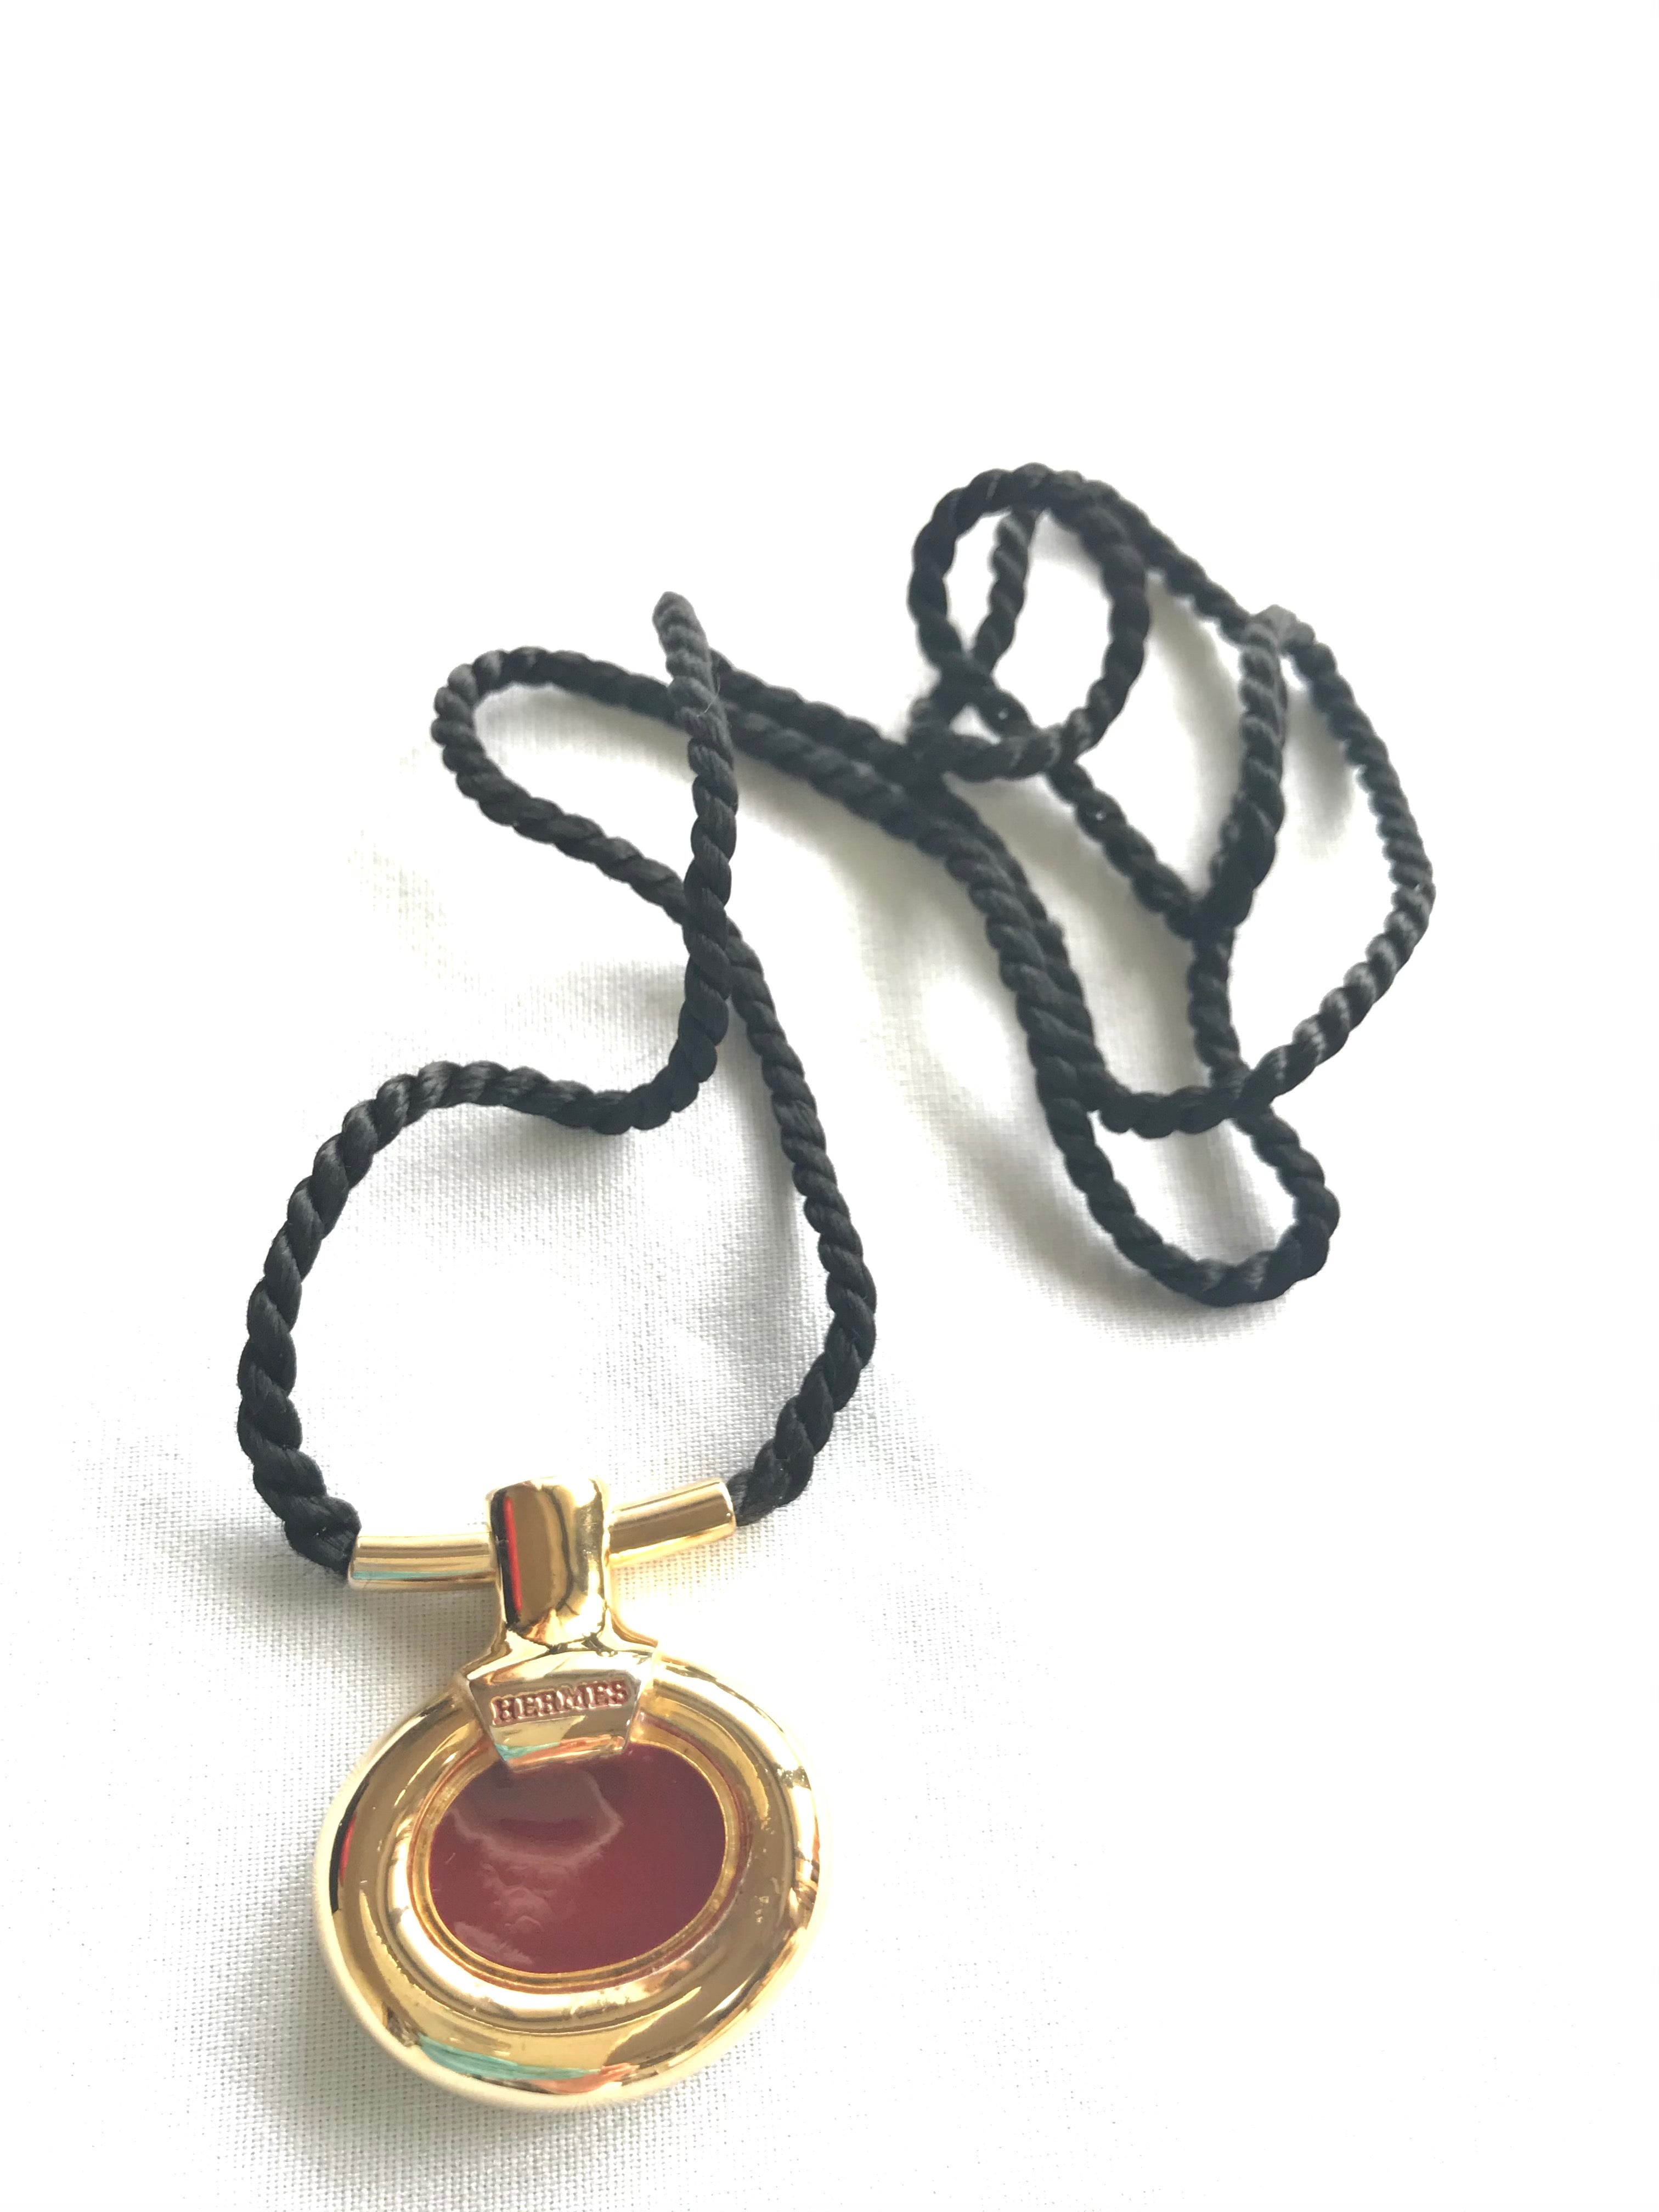 Vintage Hermes golden and red stone charm pendant top necklace with black strings. Unique jewel piece from PARFUM Collection.